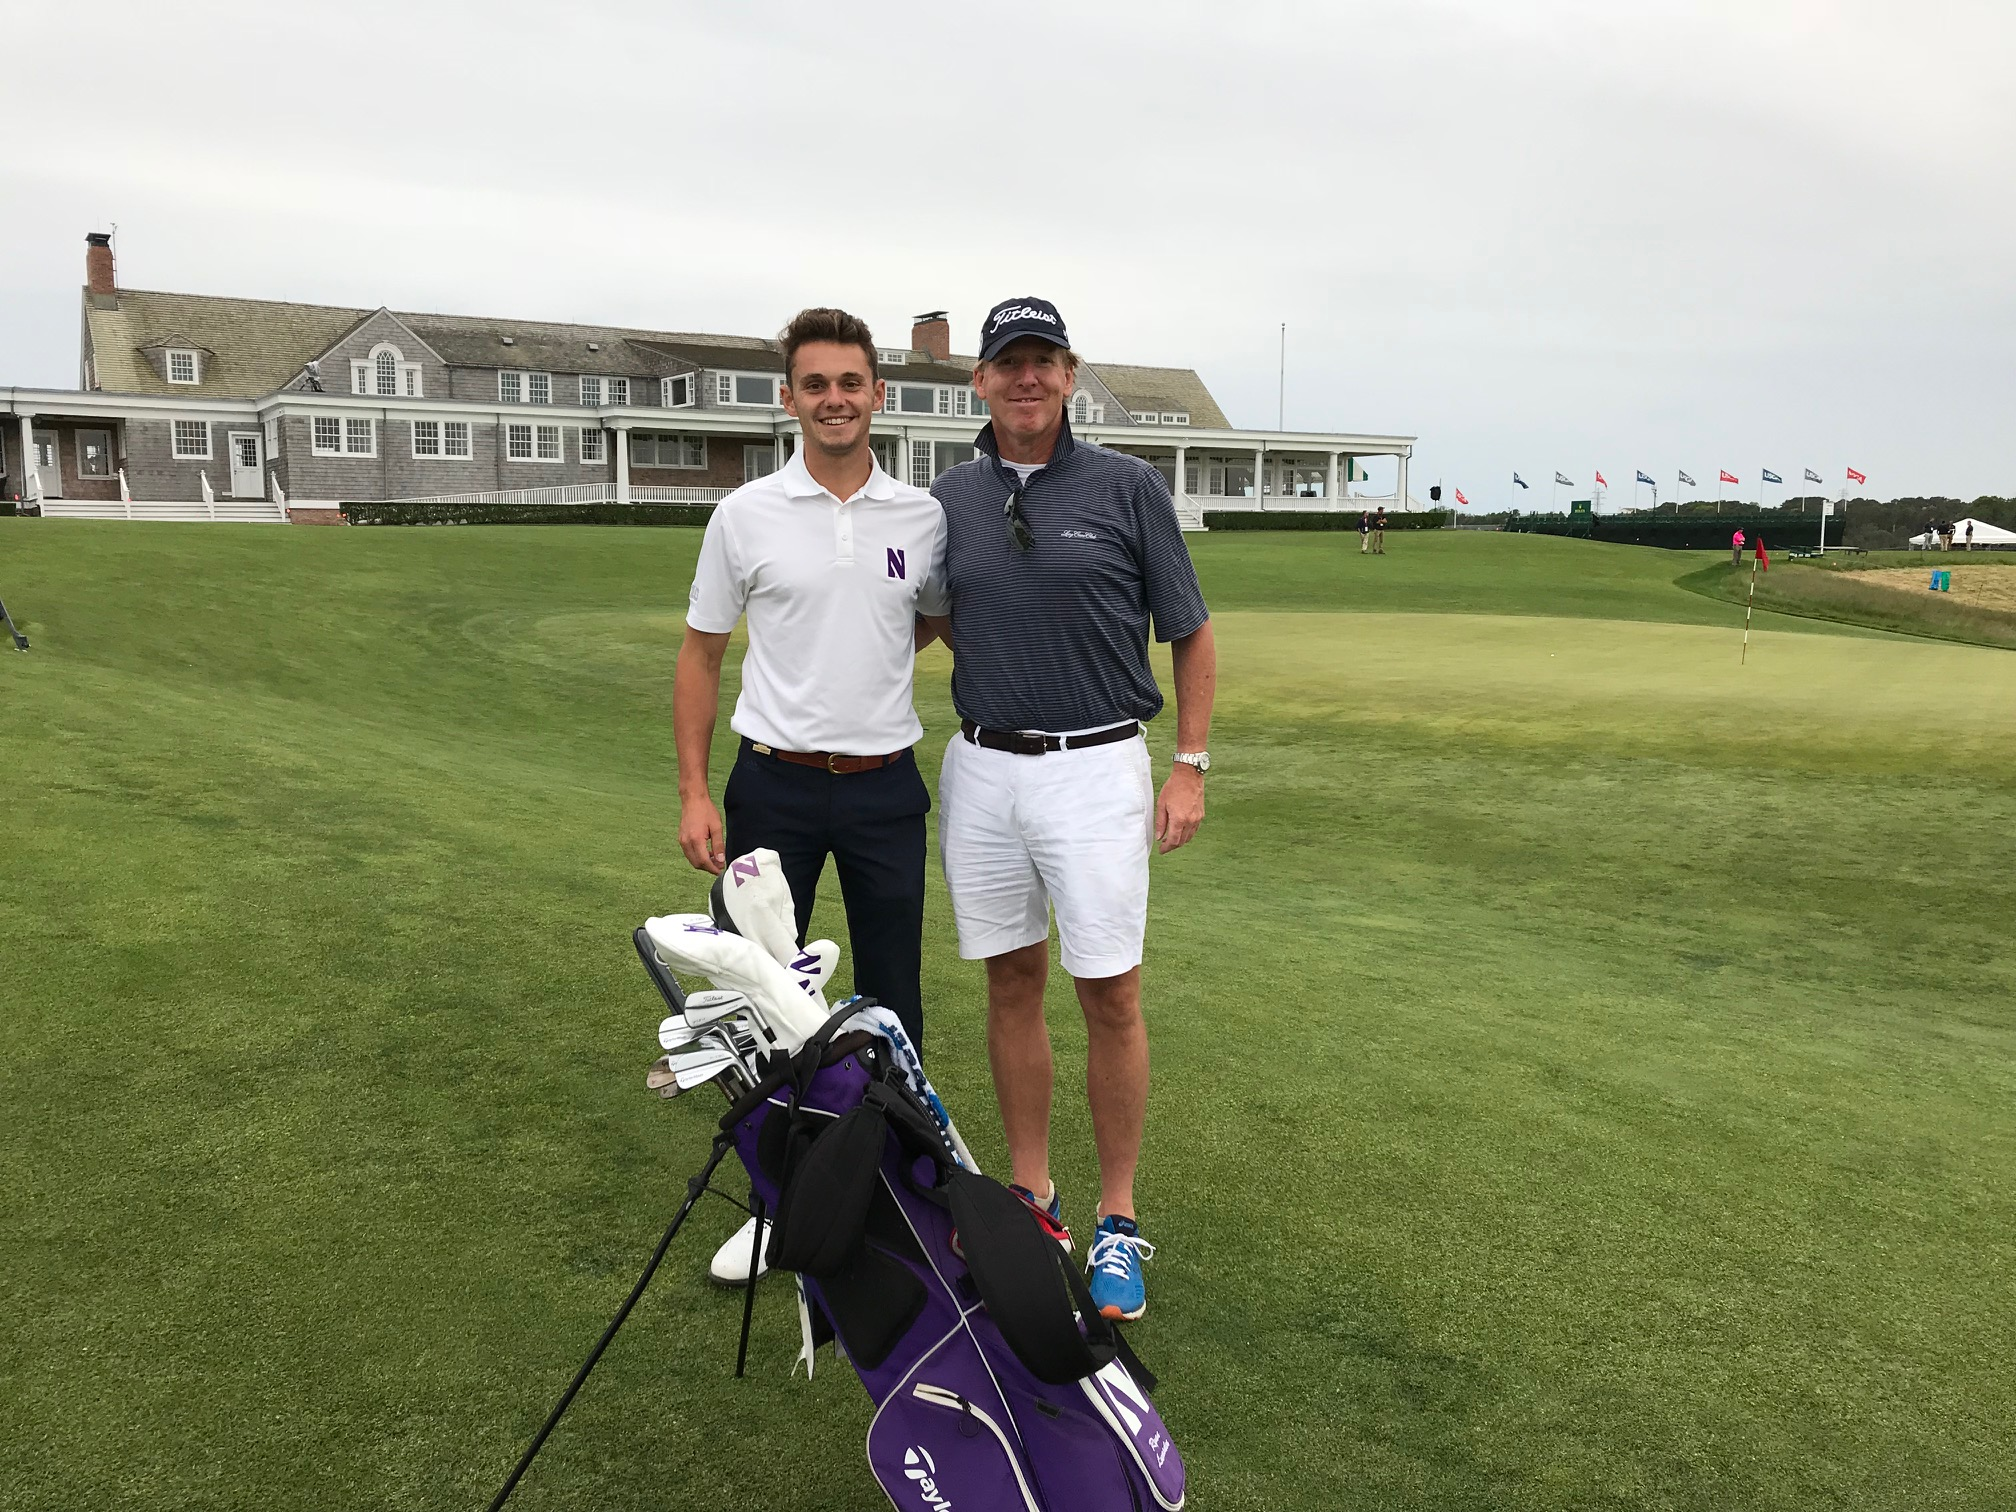 Ryan Lumsden with father, Alistar Lumsden at the 2018 US Open at Shinnecock Hills. Ryan competed as an amateur at the event.